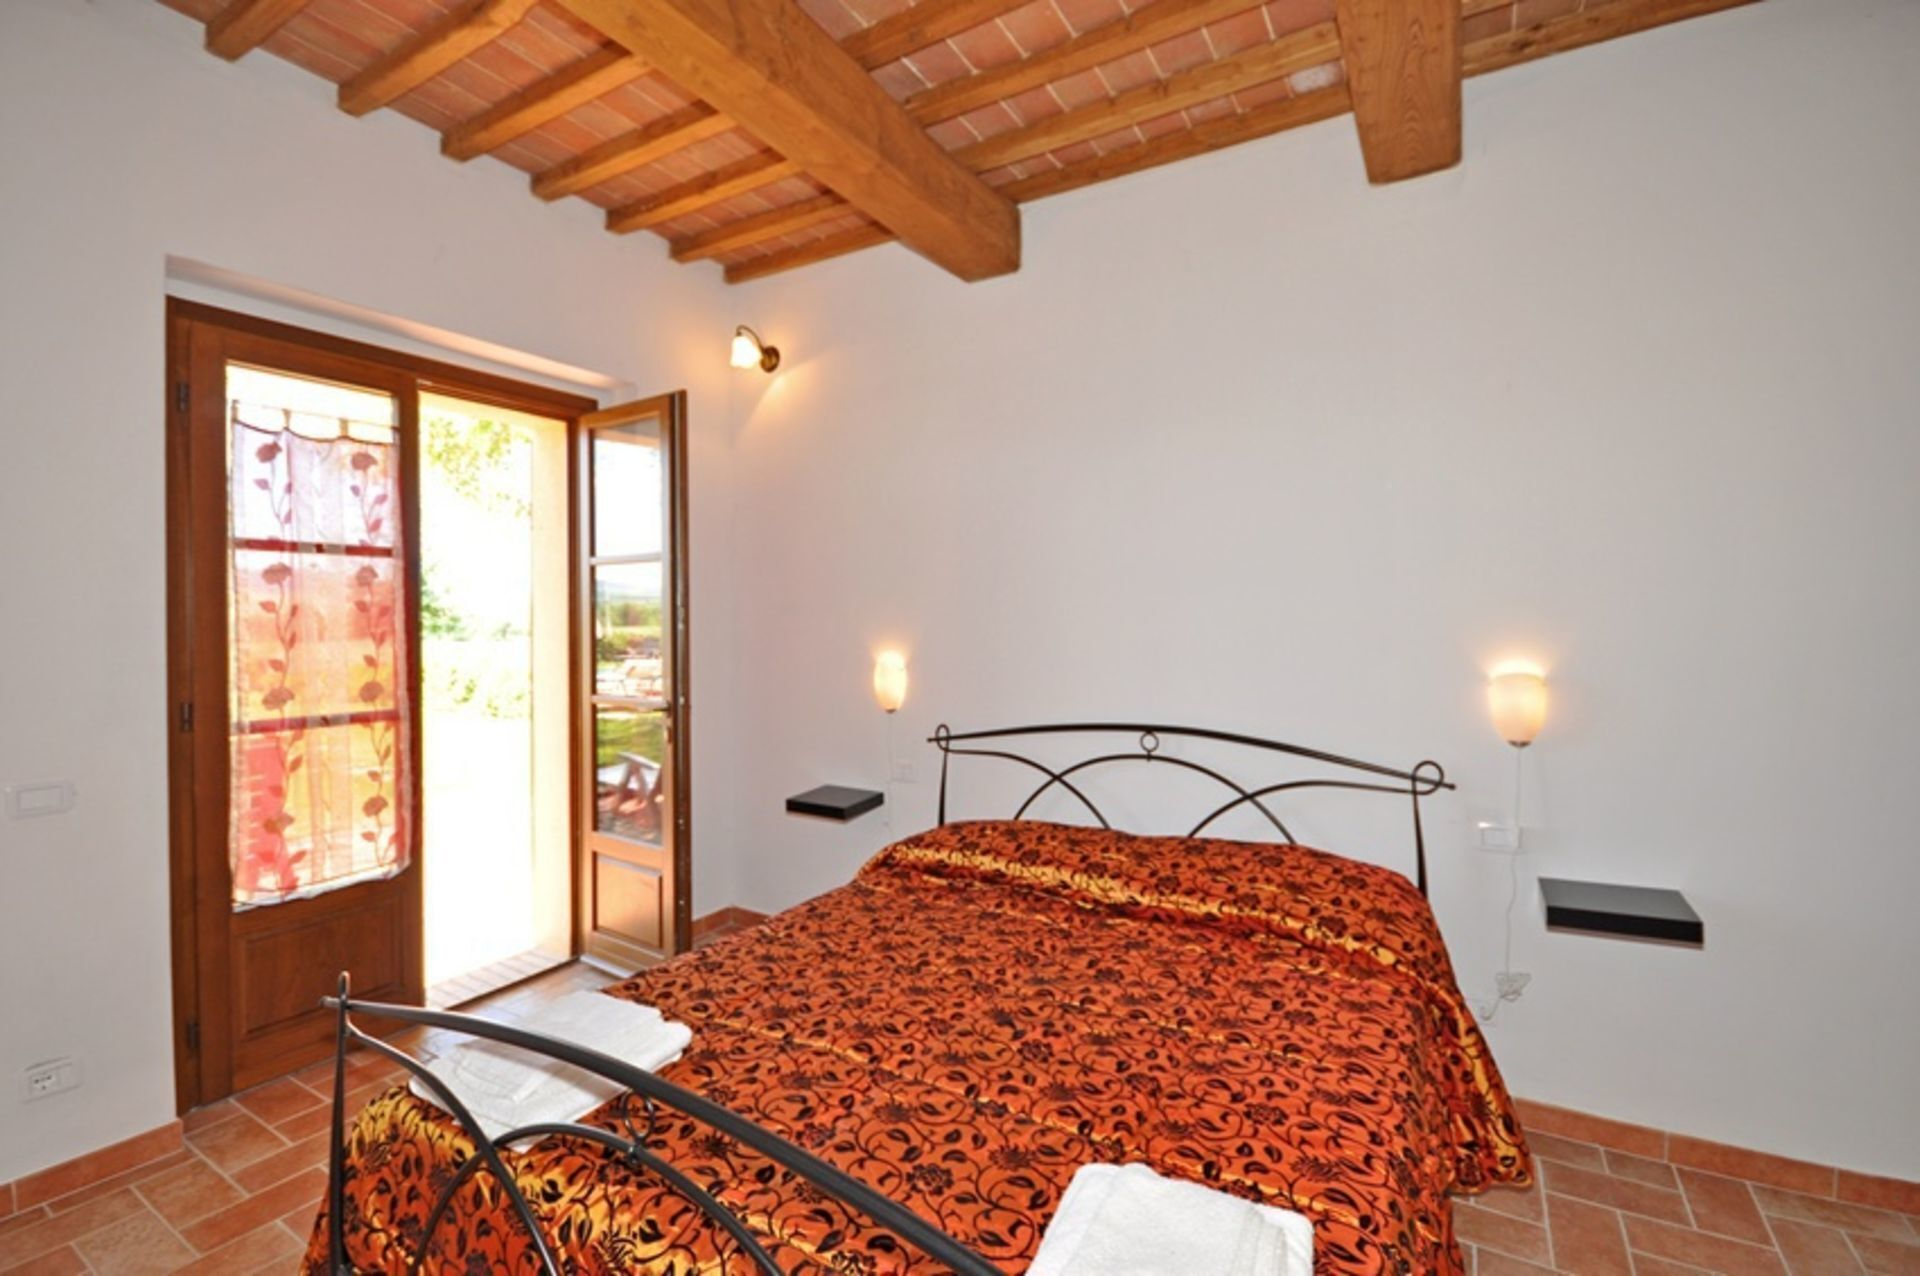 Lovely Apartment for 6 Guests With Wifi, Pool, Panoramic View and Parking, Close to Montepulciano